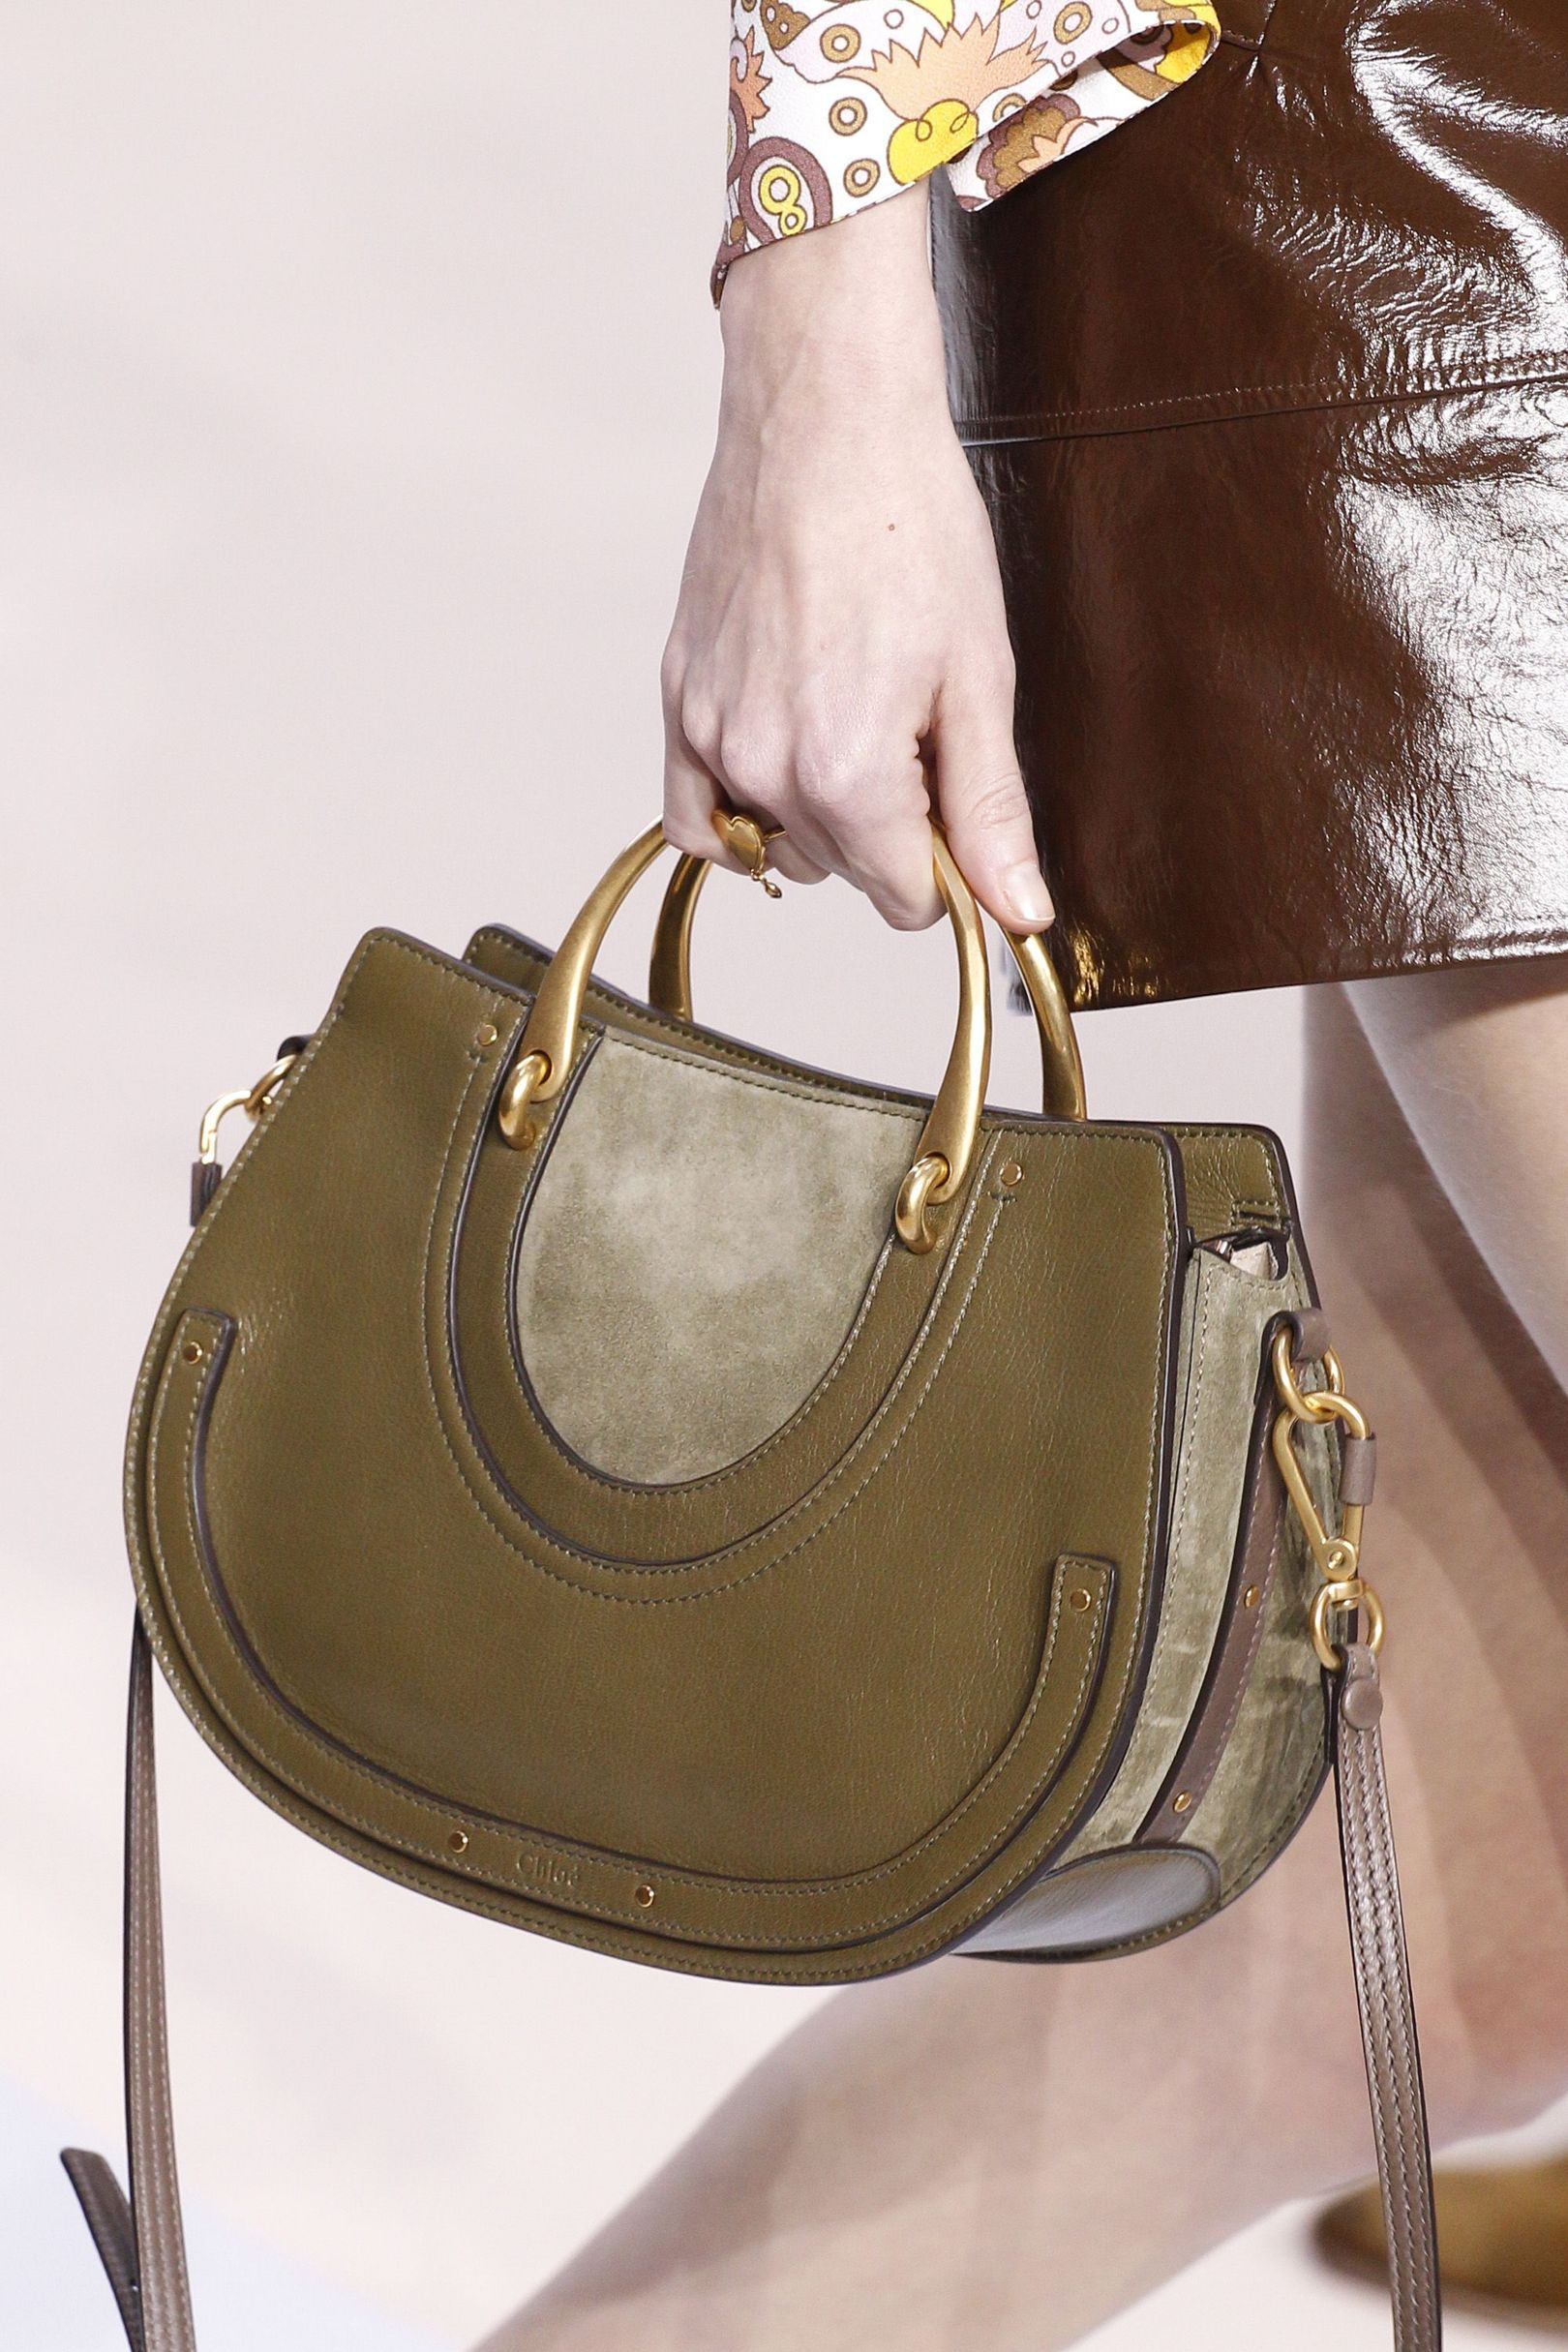 Your New Season Leather Handbag Guide advise